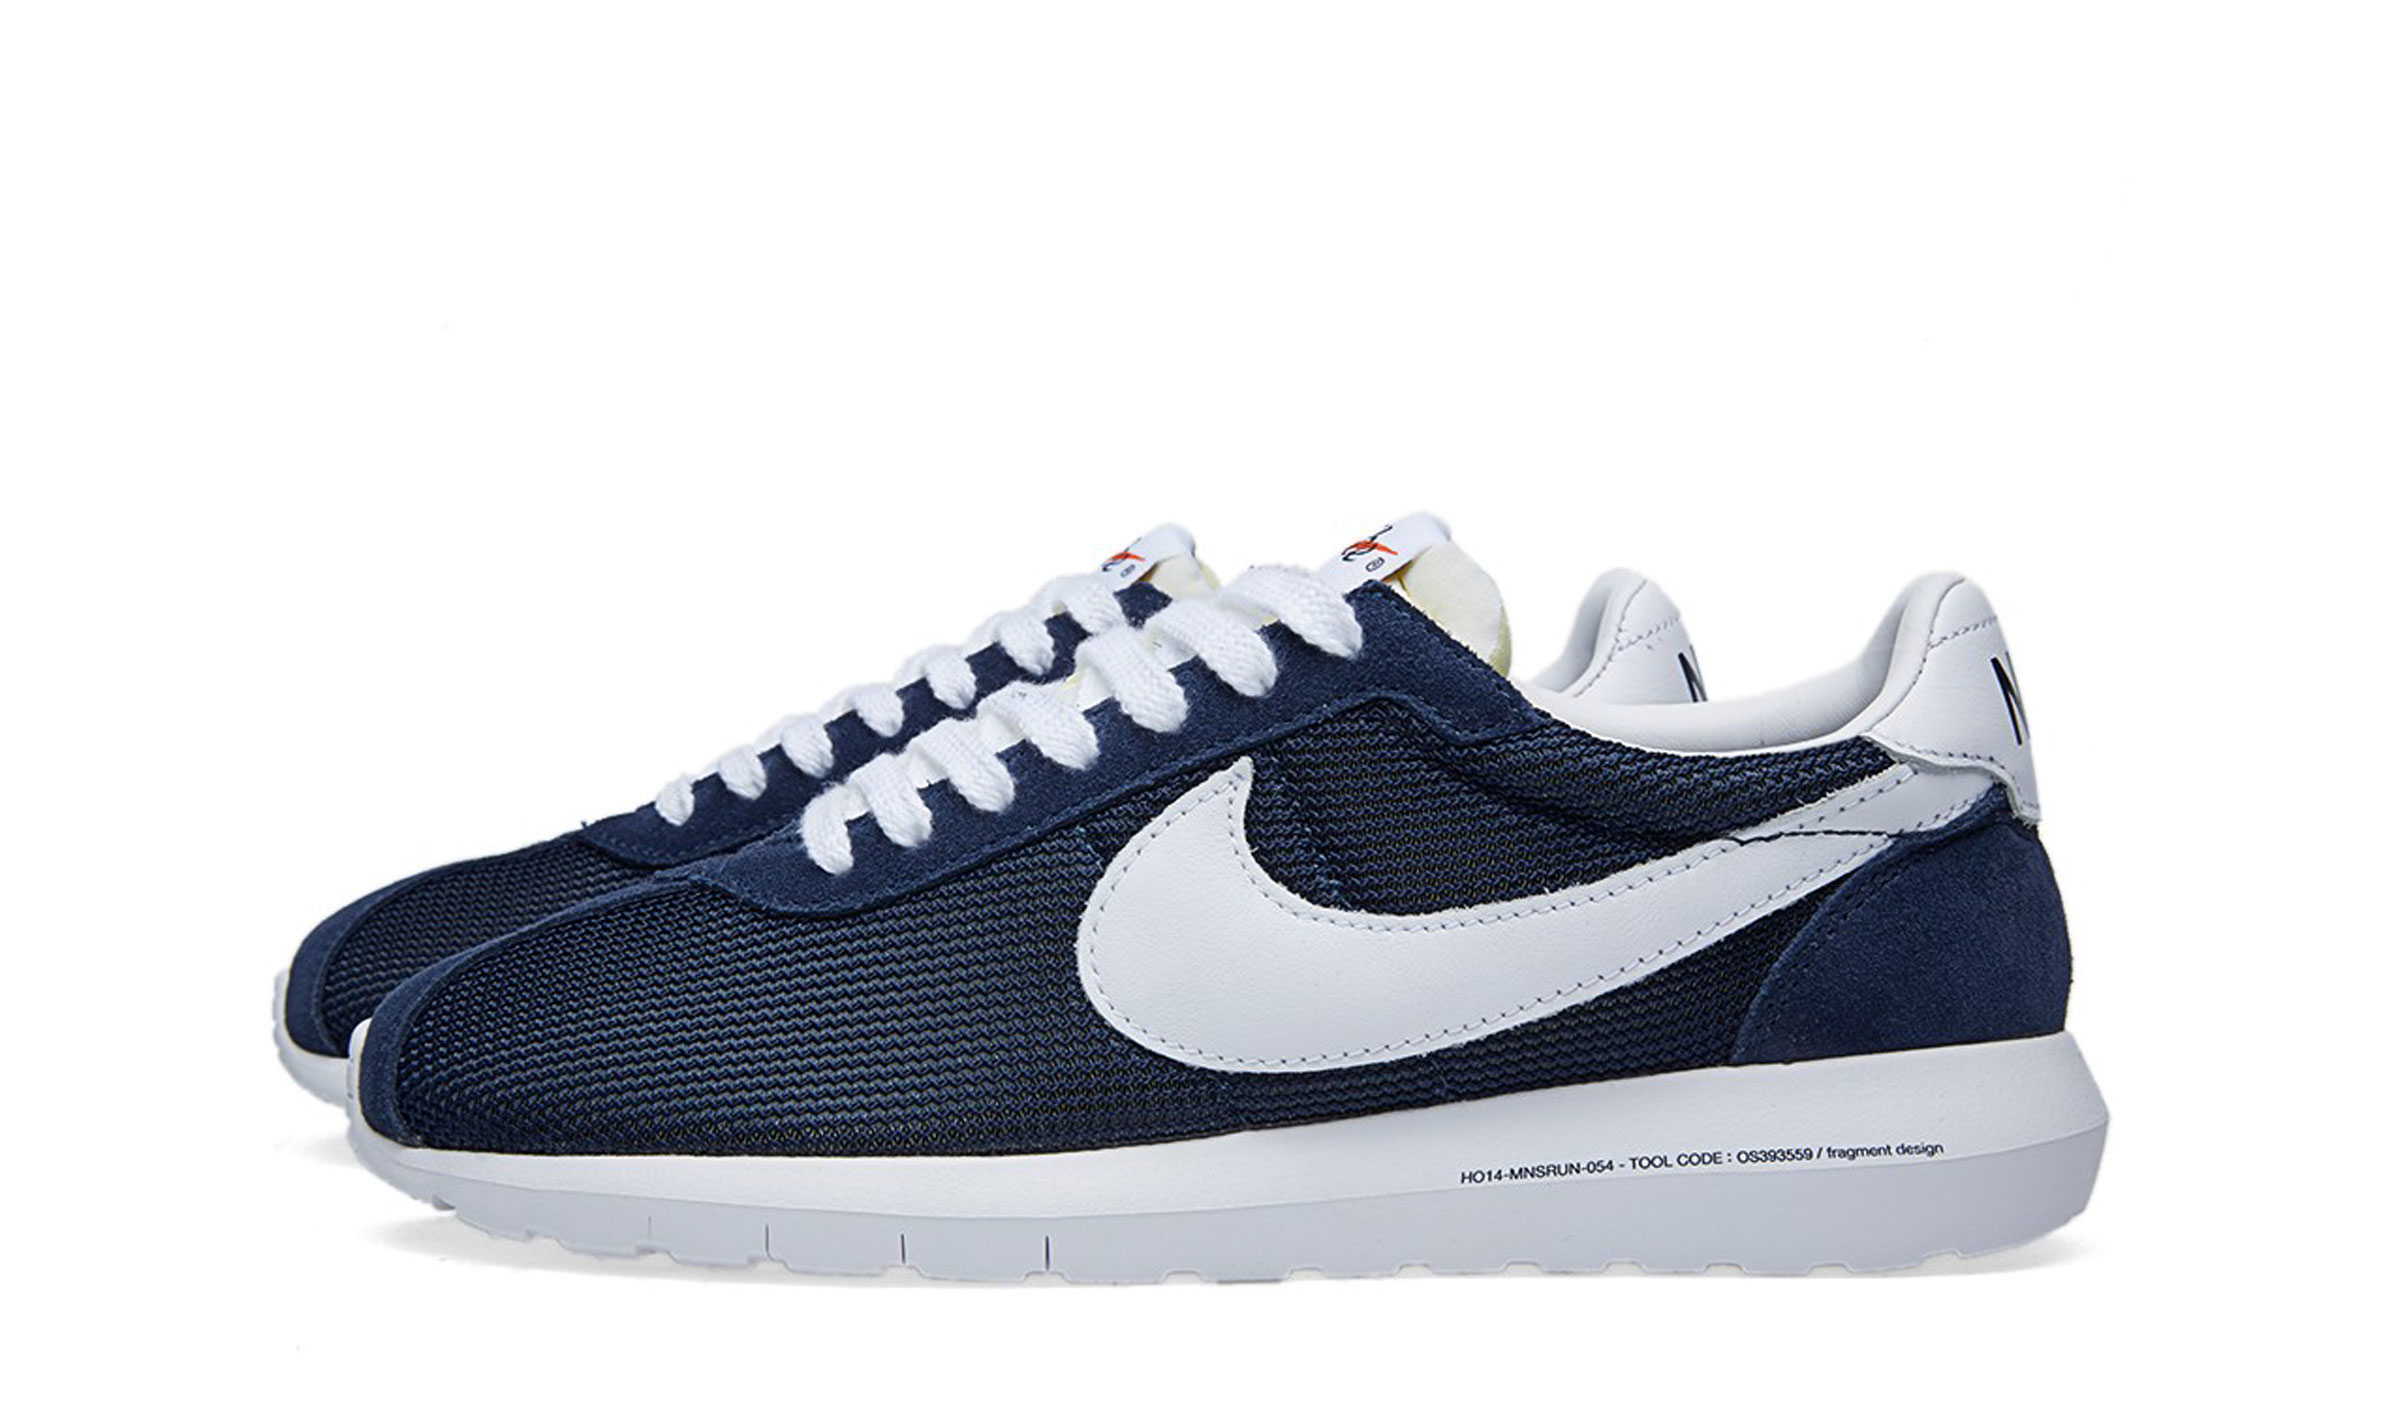 NIKE X FRAGMENT DESIGN ROSHE LD-1000 SP